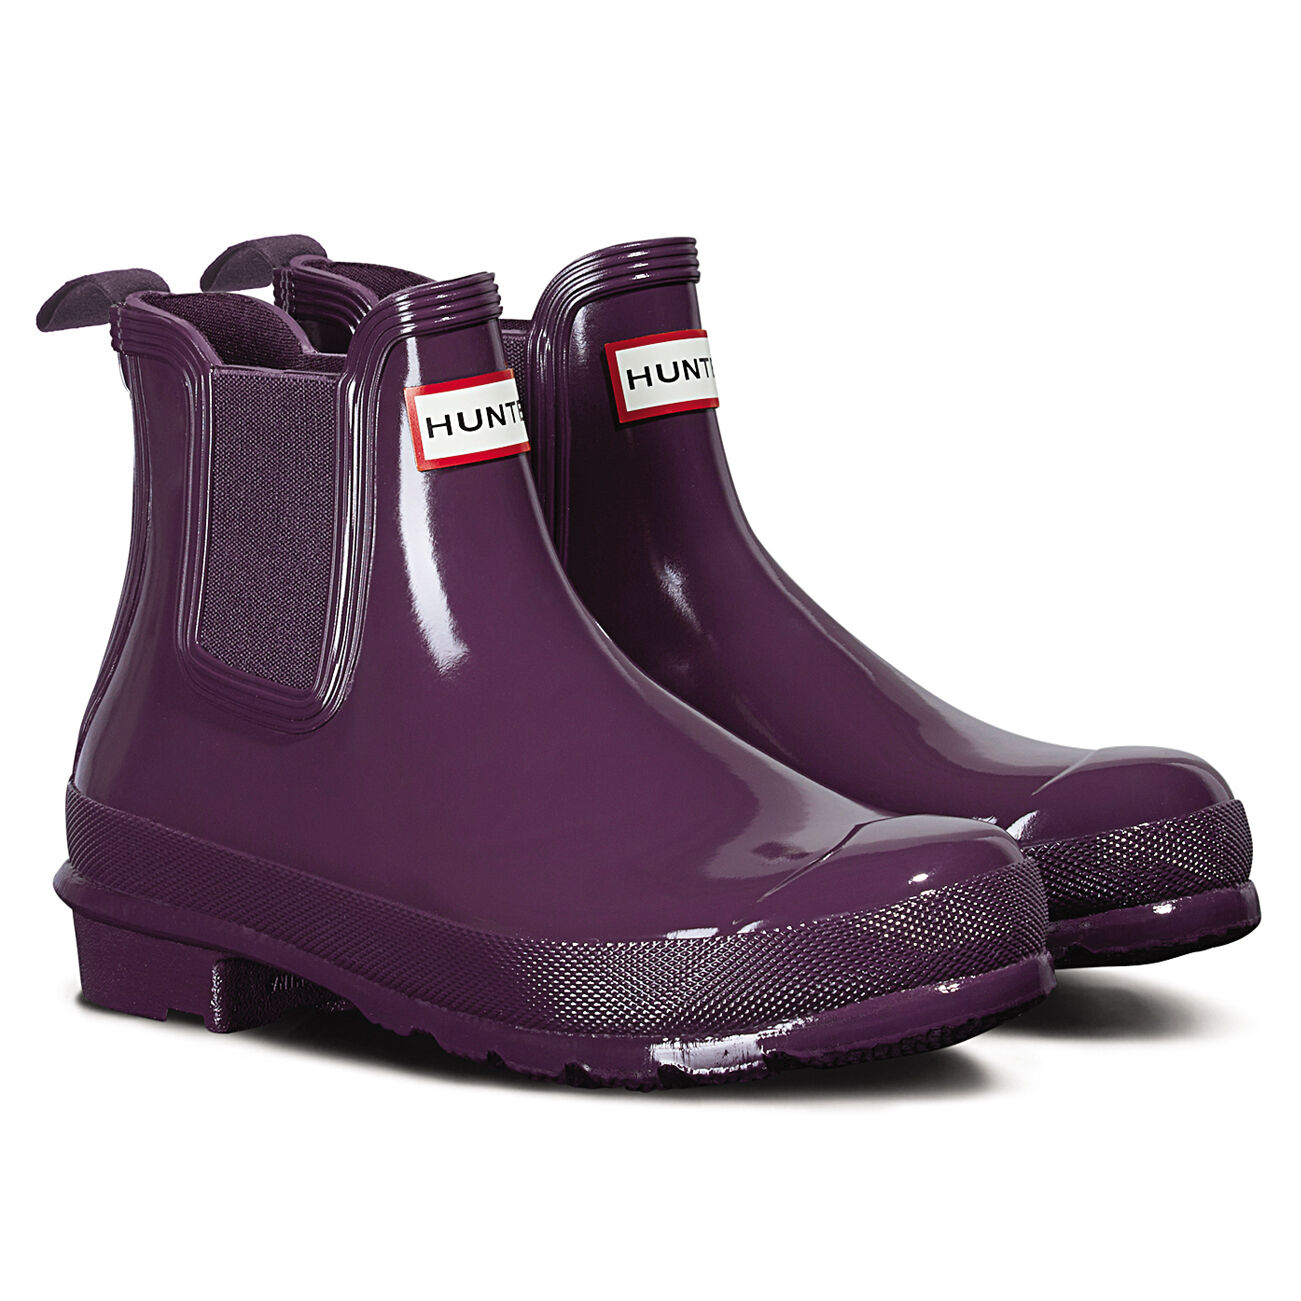 Genuine New Hunter Original Chelsea Donna Gloss Riccio di Viola Impermeabile Alla Caviglia B